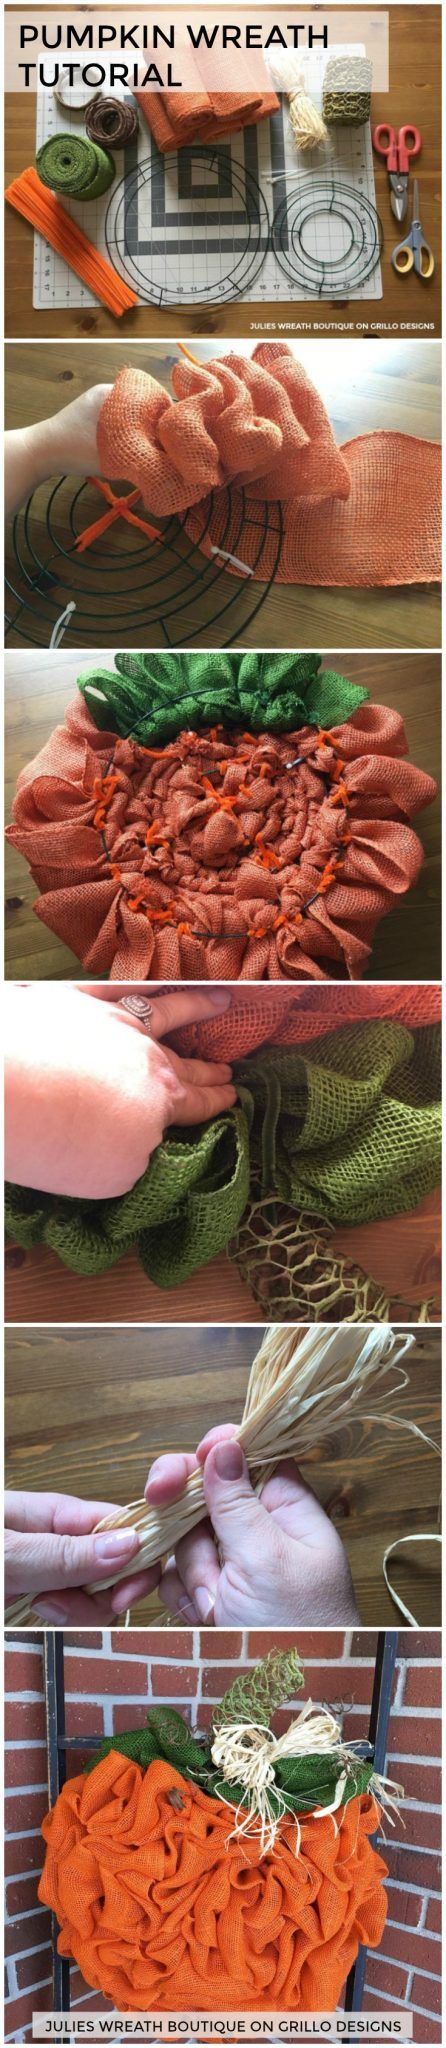 Ever wondered how to make a DIY pumpkin wreath? This tutorial by Julie Oxendine will show you step by step how to make the perfect pumpkin wreath for Fall! So g